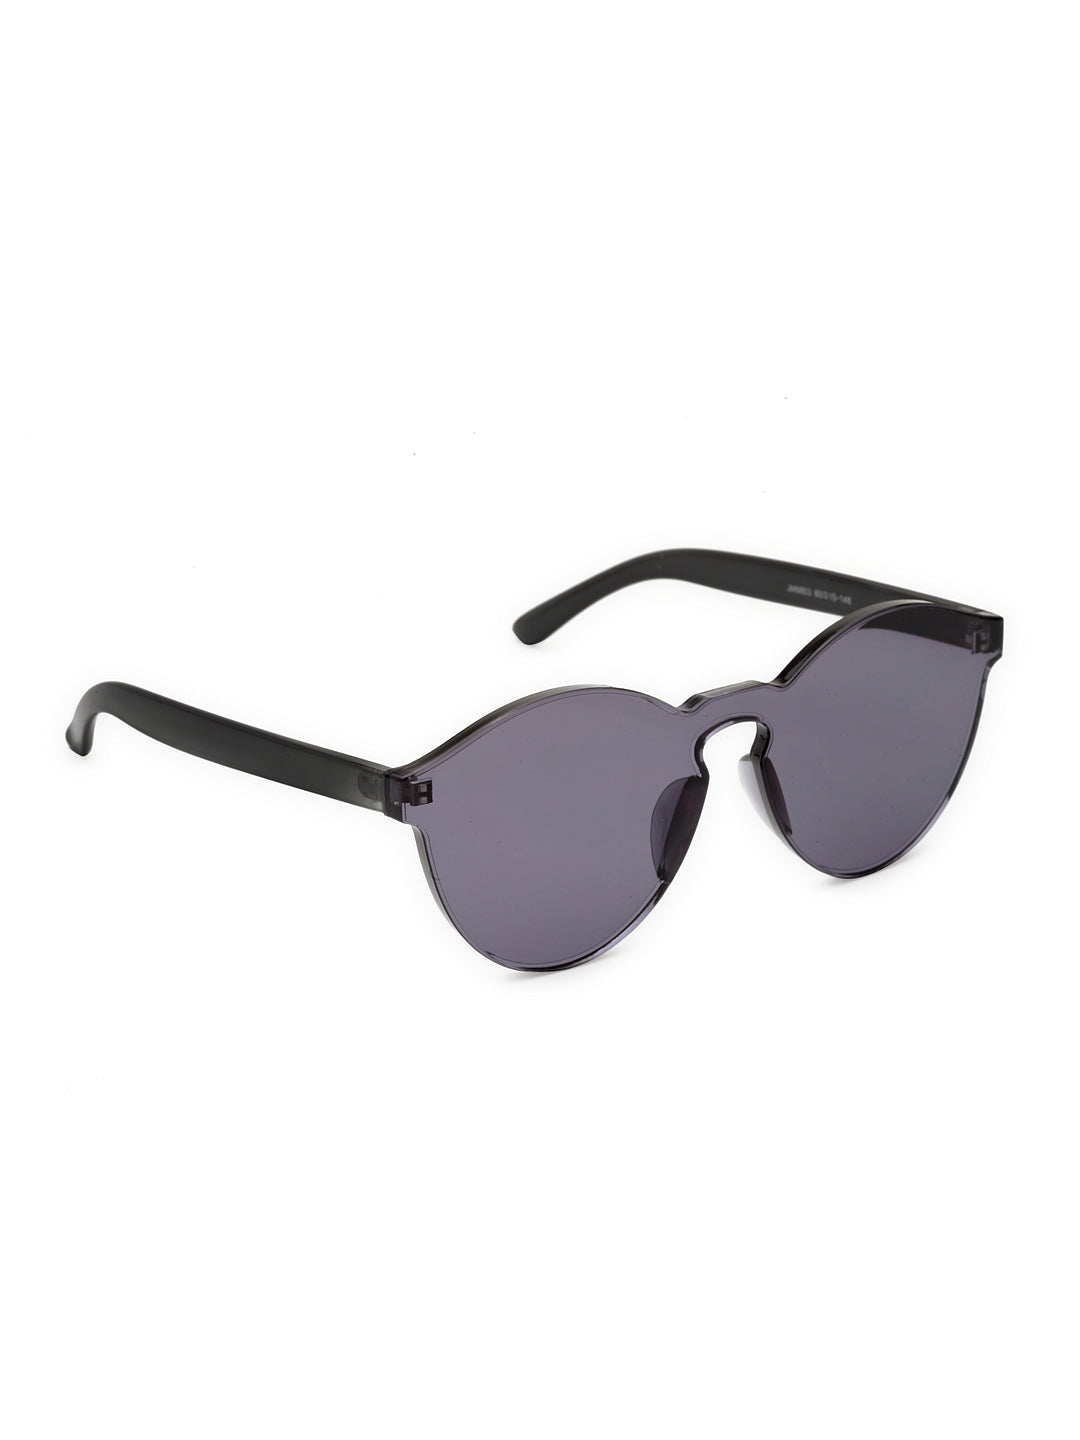 Avant-Garde Paris Transparent Rimless One Piece Candy Color Sunglasses